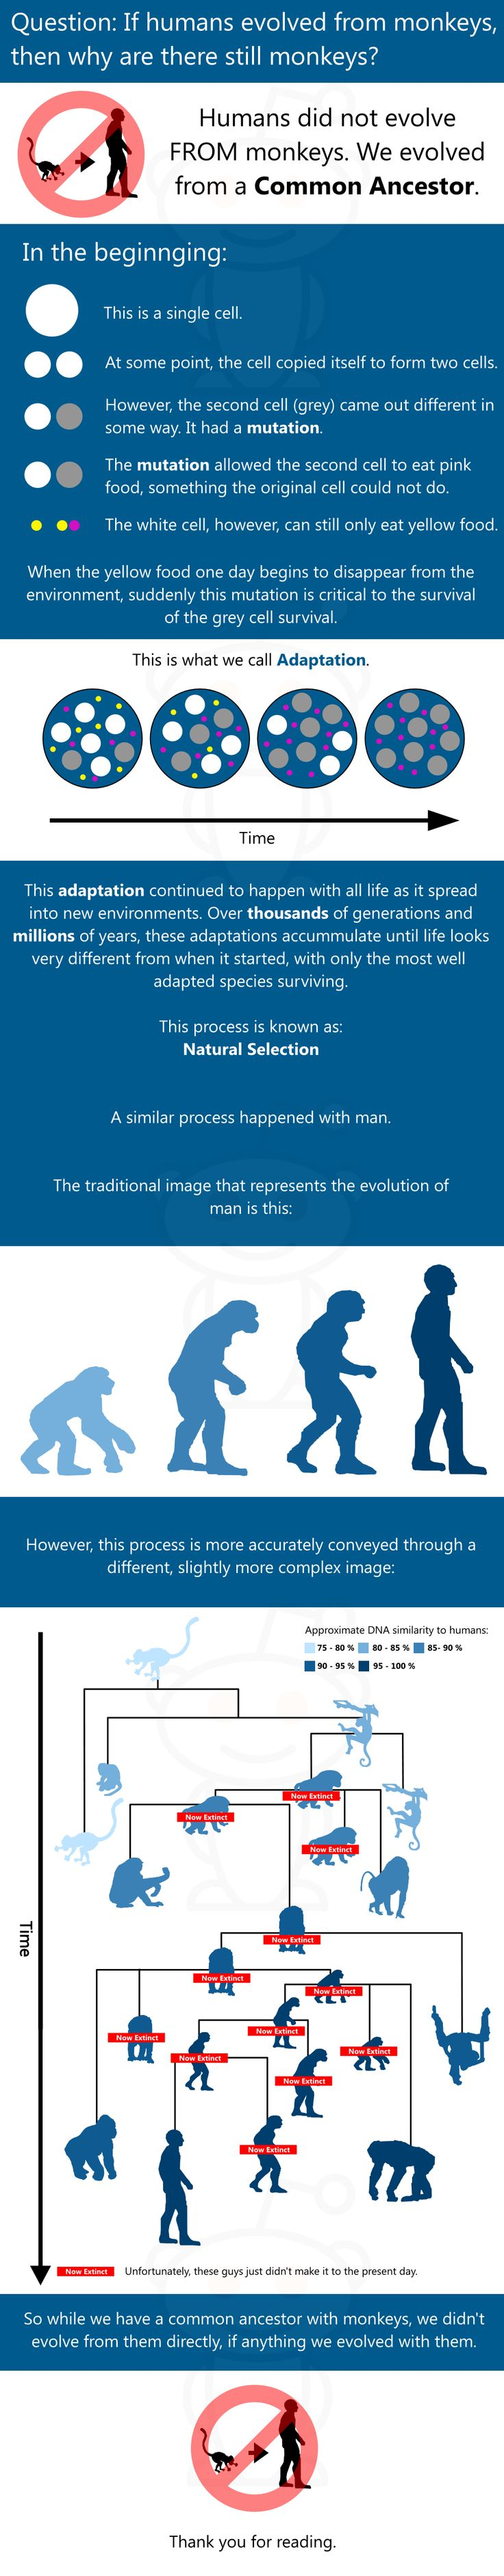 88 best Evolution images on Pinterest | Atheism, Atheist quotes and ...